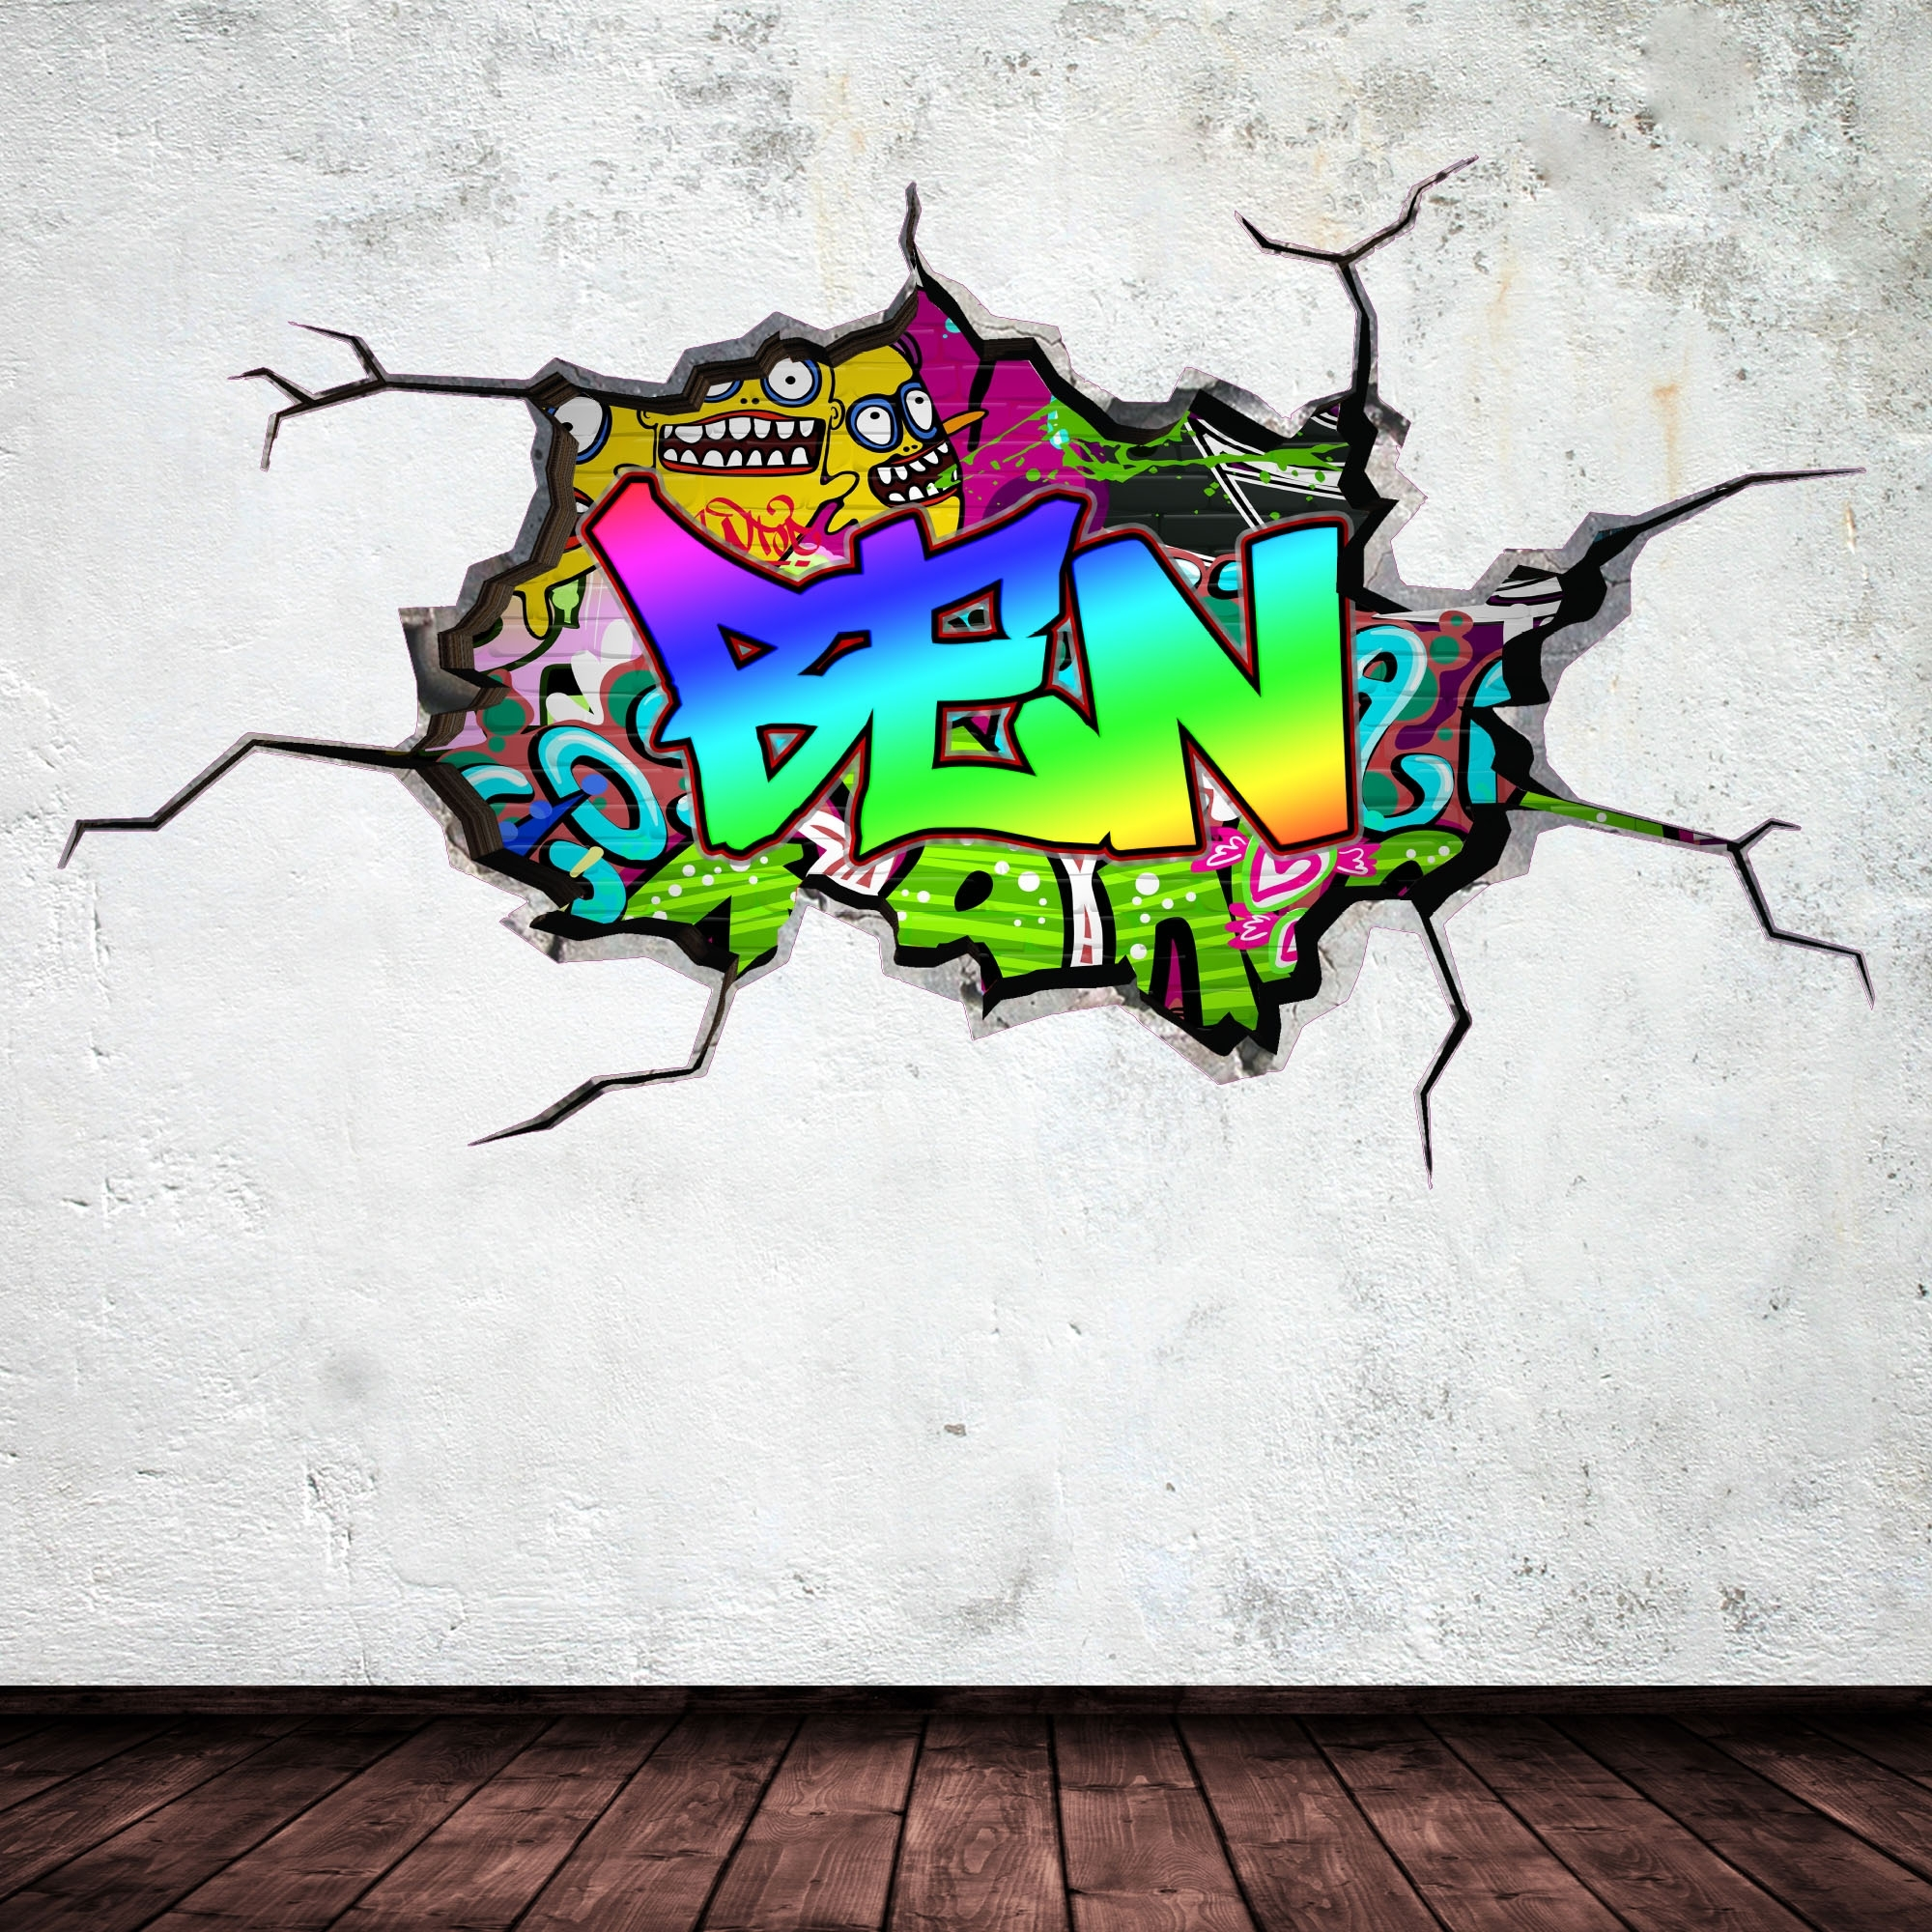 Full Colour Personalised 3D Graffiti Name Cracked Wall Art Stickers Inside Most Recently Released Name Wall Art (Gallery 20 of 20)